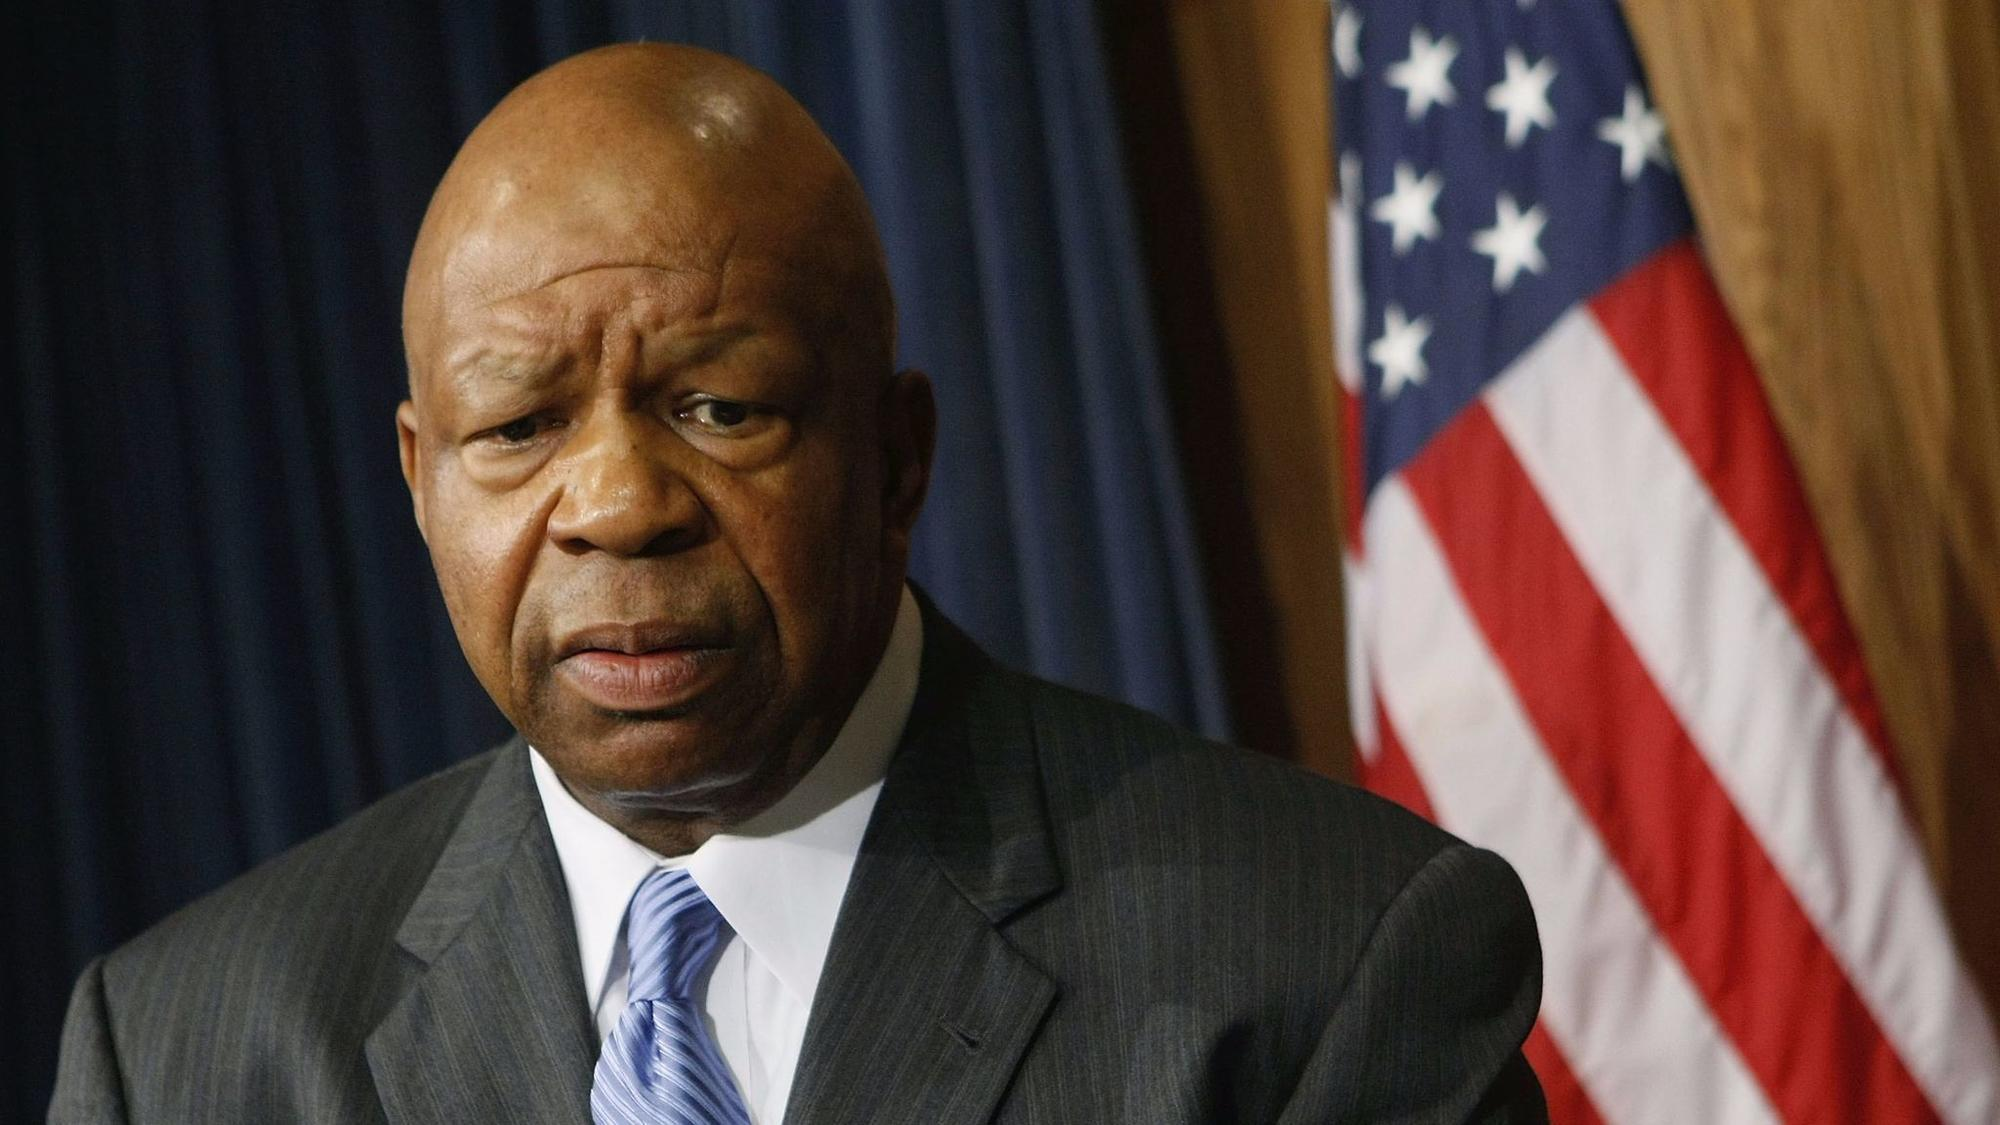 Rep. Elijah Cummings To Speak At University Of Maryland Winter Commencement